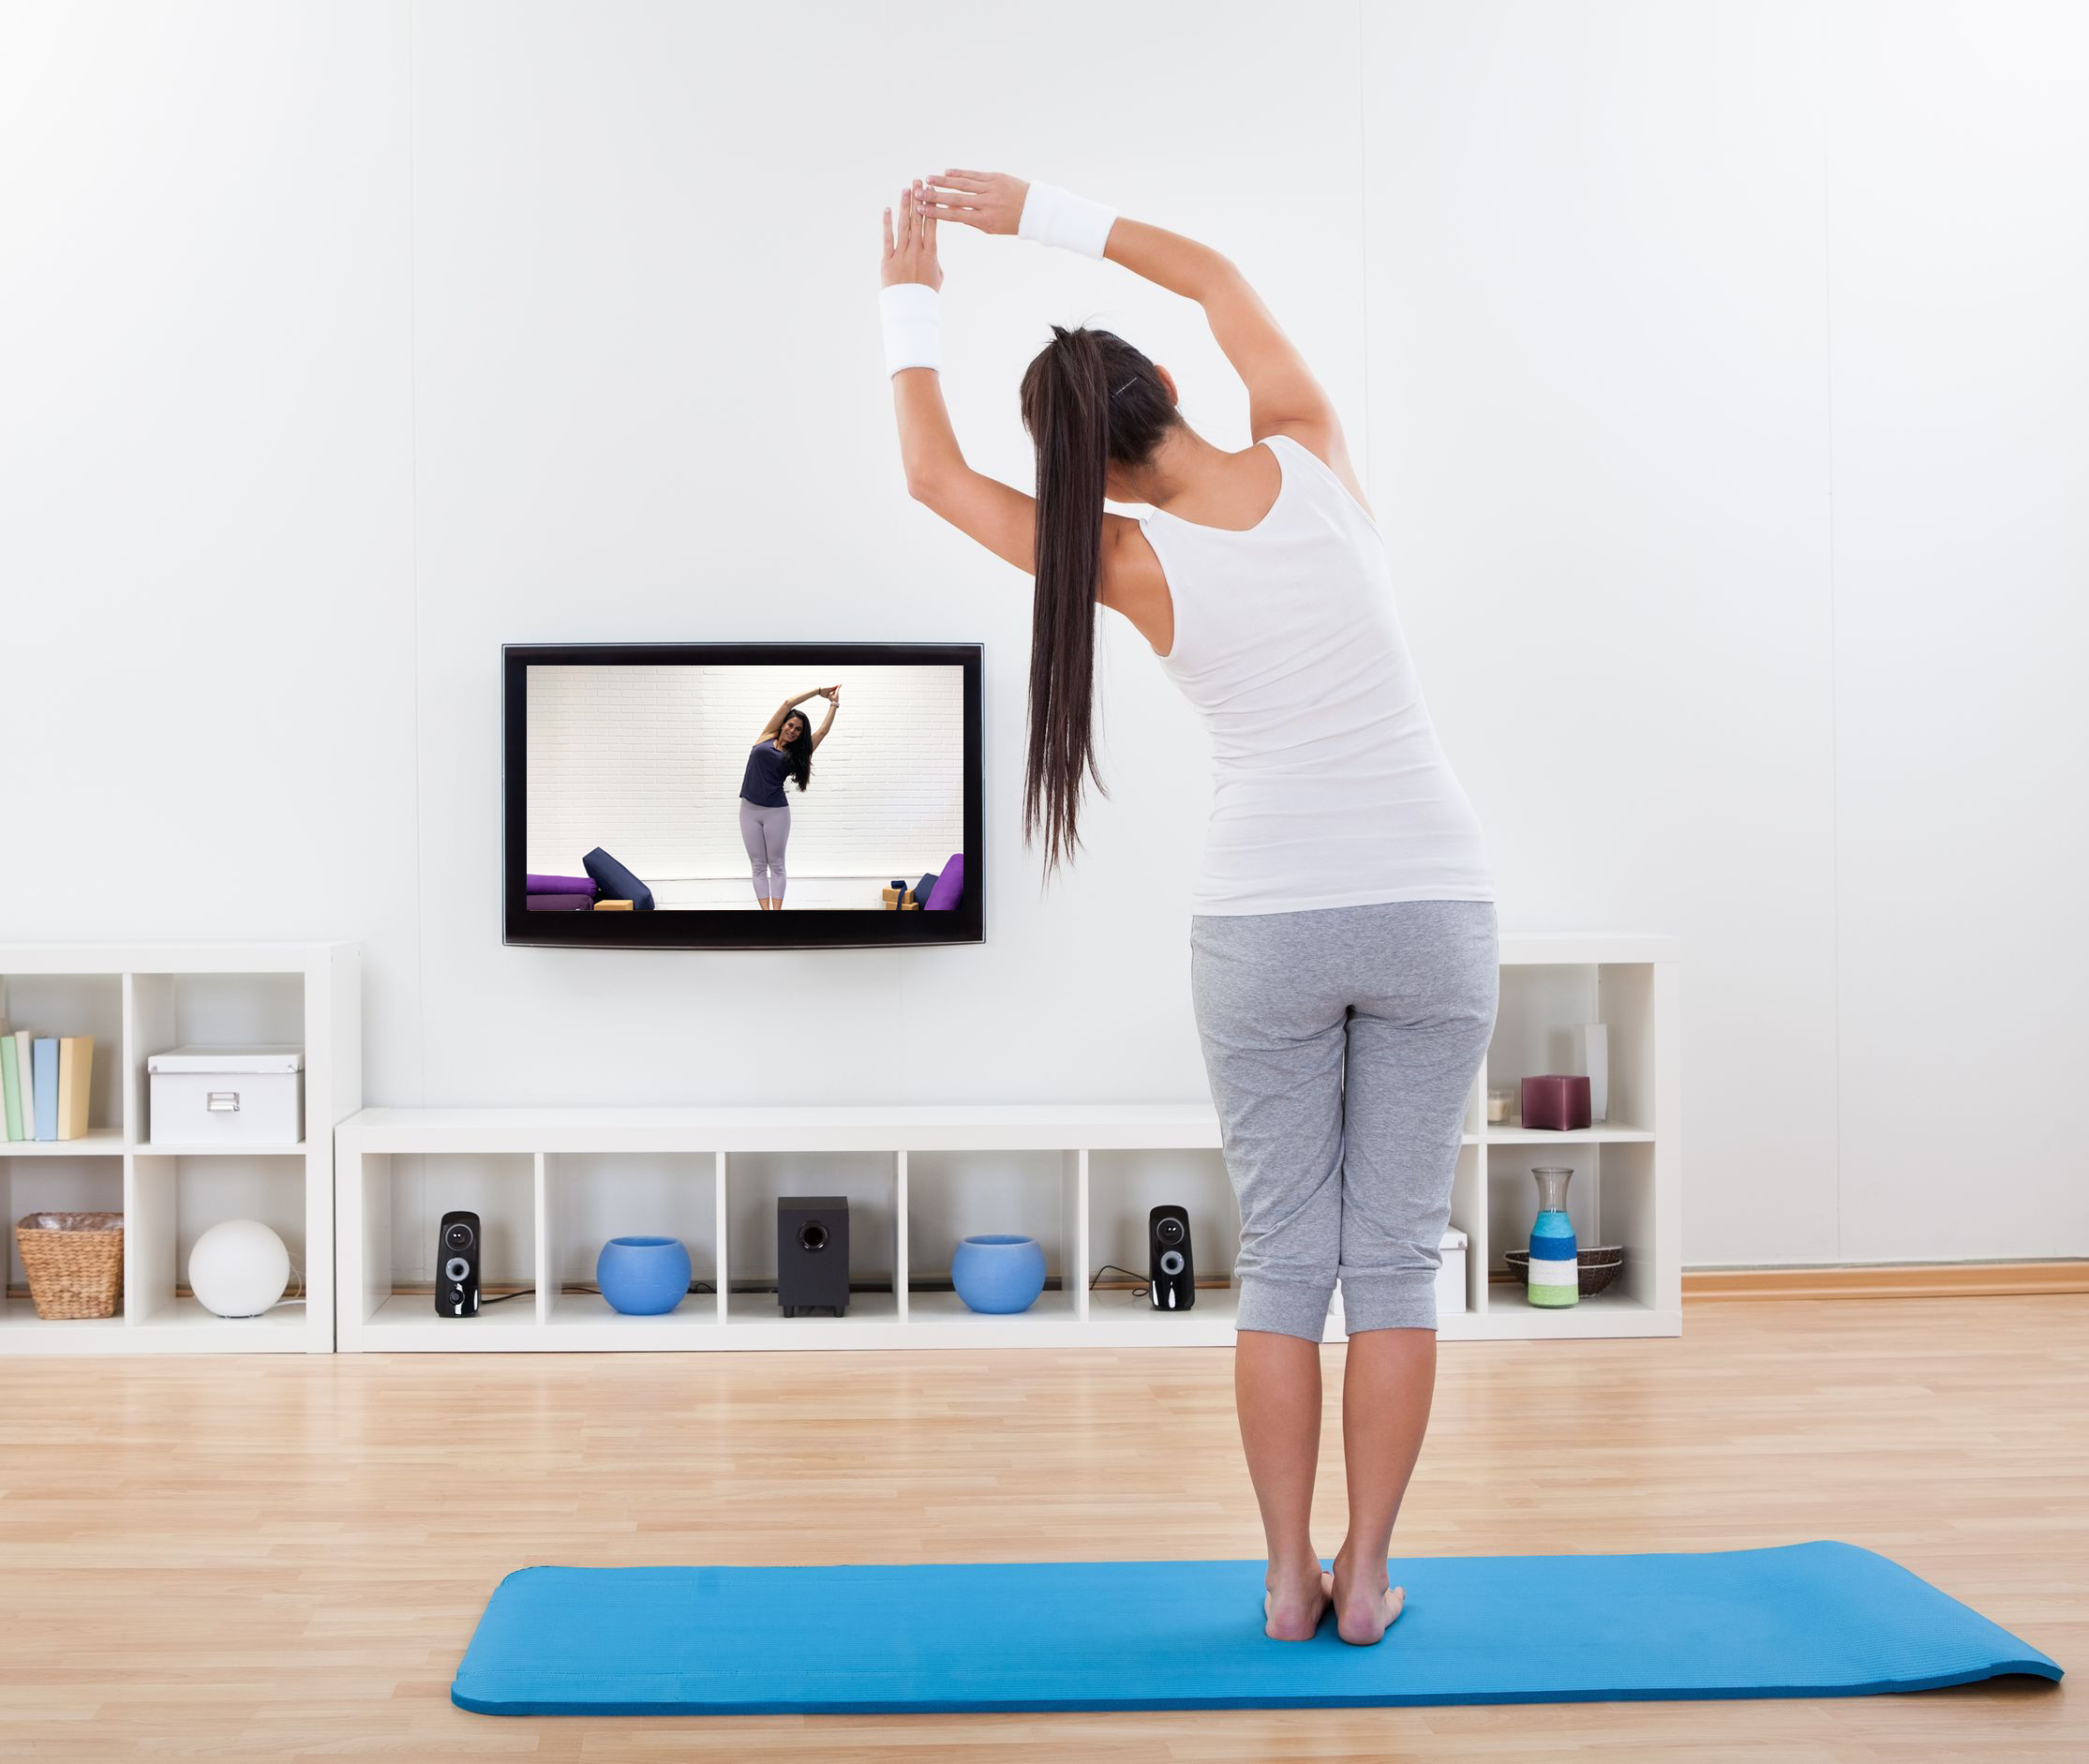 75 minute Online Personal Yoga Session